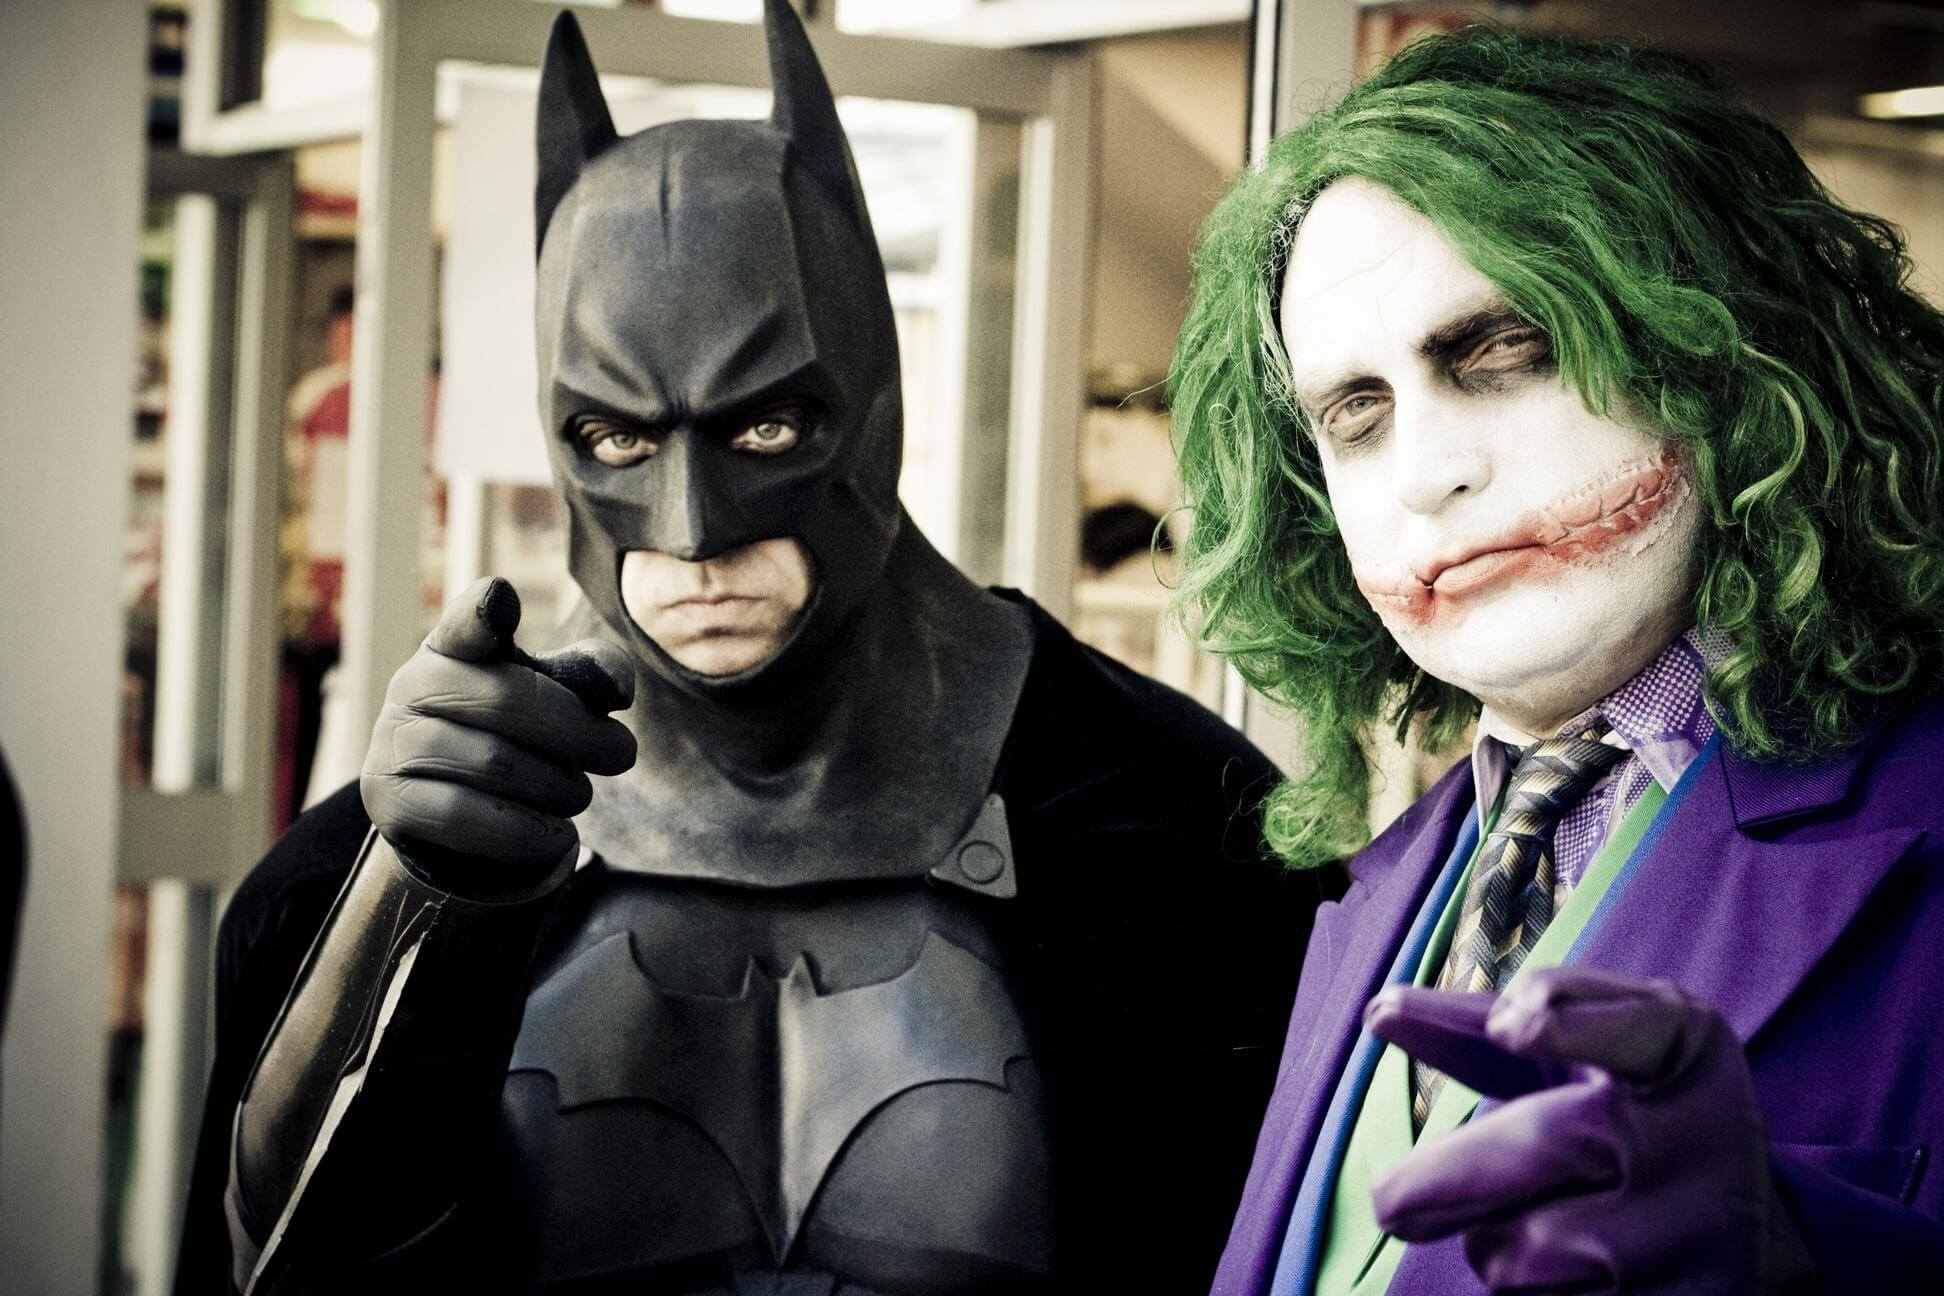 Batman Joker funny halloween costume for couple